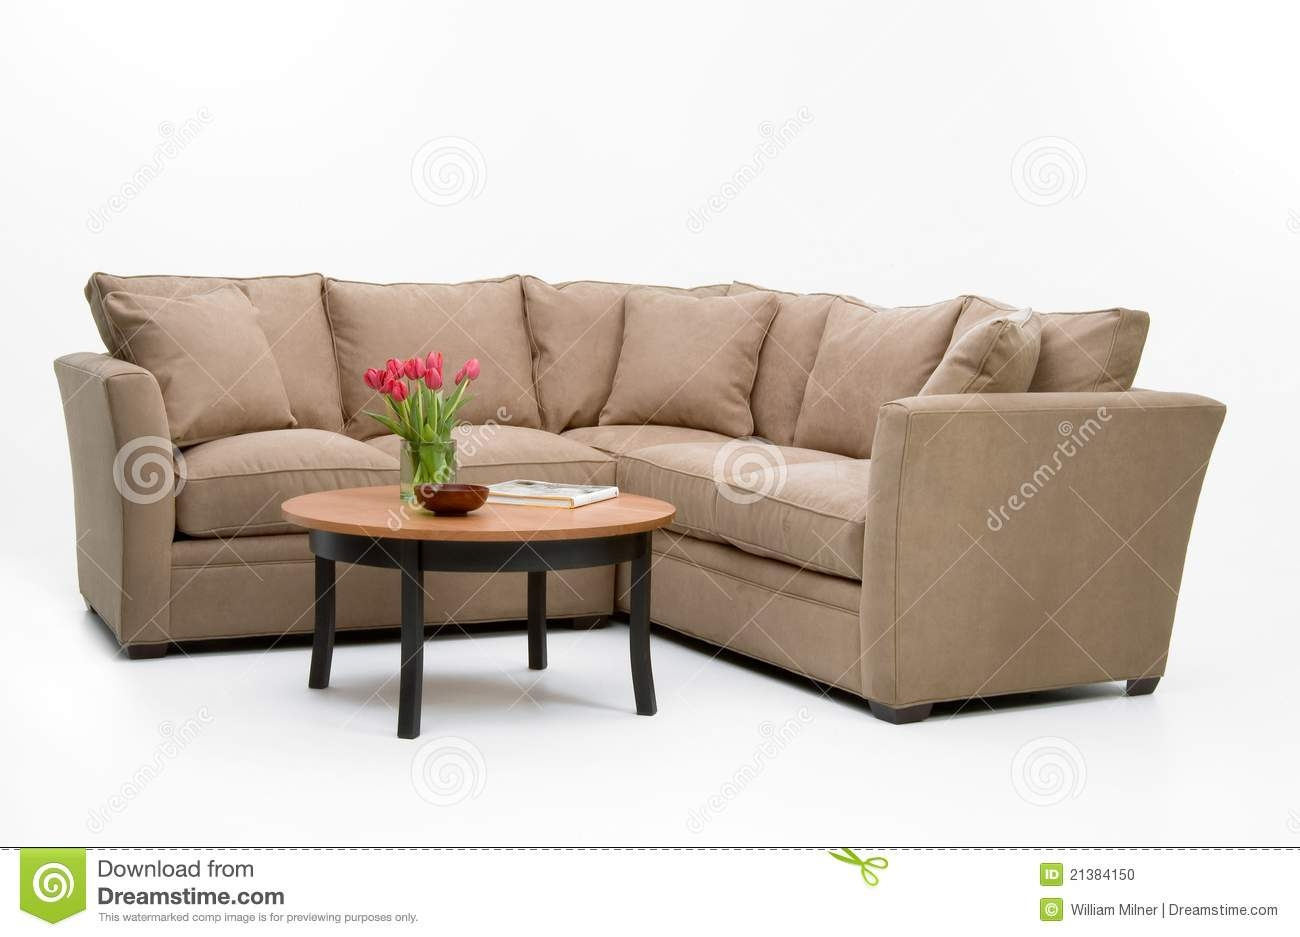 Fabric Sofa Set Table Stock Photo Image 21384150 Regarding Sofa Table With Chairs (Image 4 of 15)